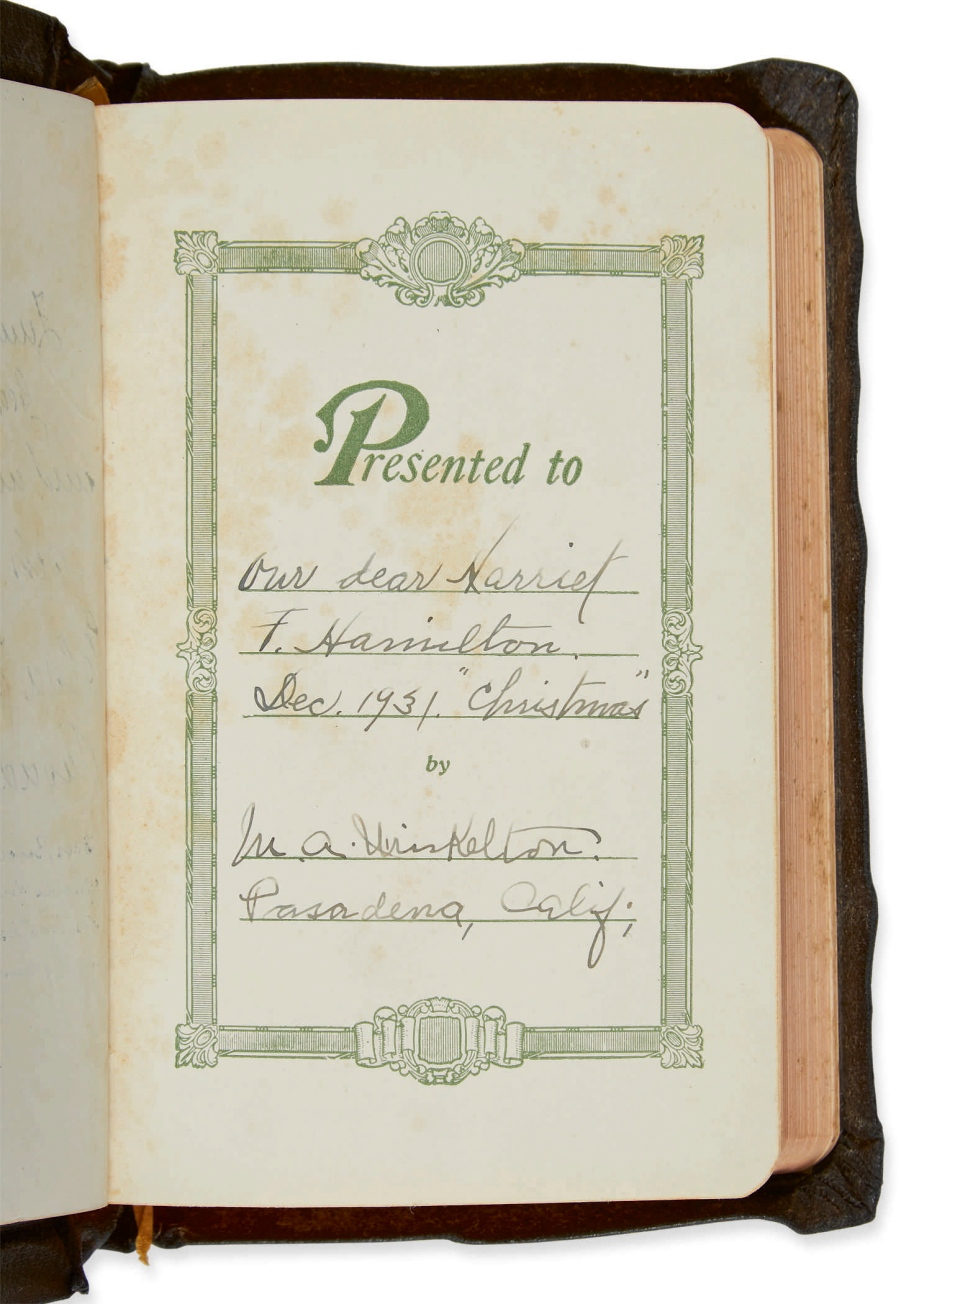 This undated photo provided by Sotheby's shows the inscription in a bible that was given as a gift to Harriet Hamilton by Albert Einstein and his wife, Elsa, in February of 1932. It is being auctioned by Sotheby's on Nov. 30, 2018. (Sotheby's via AP)